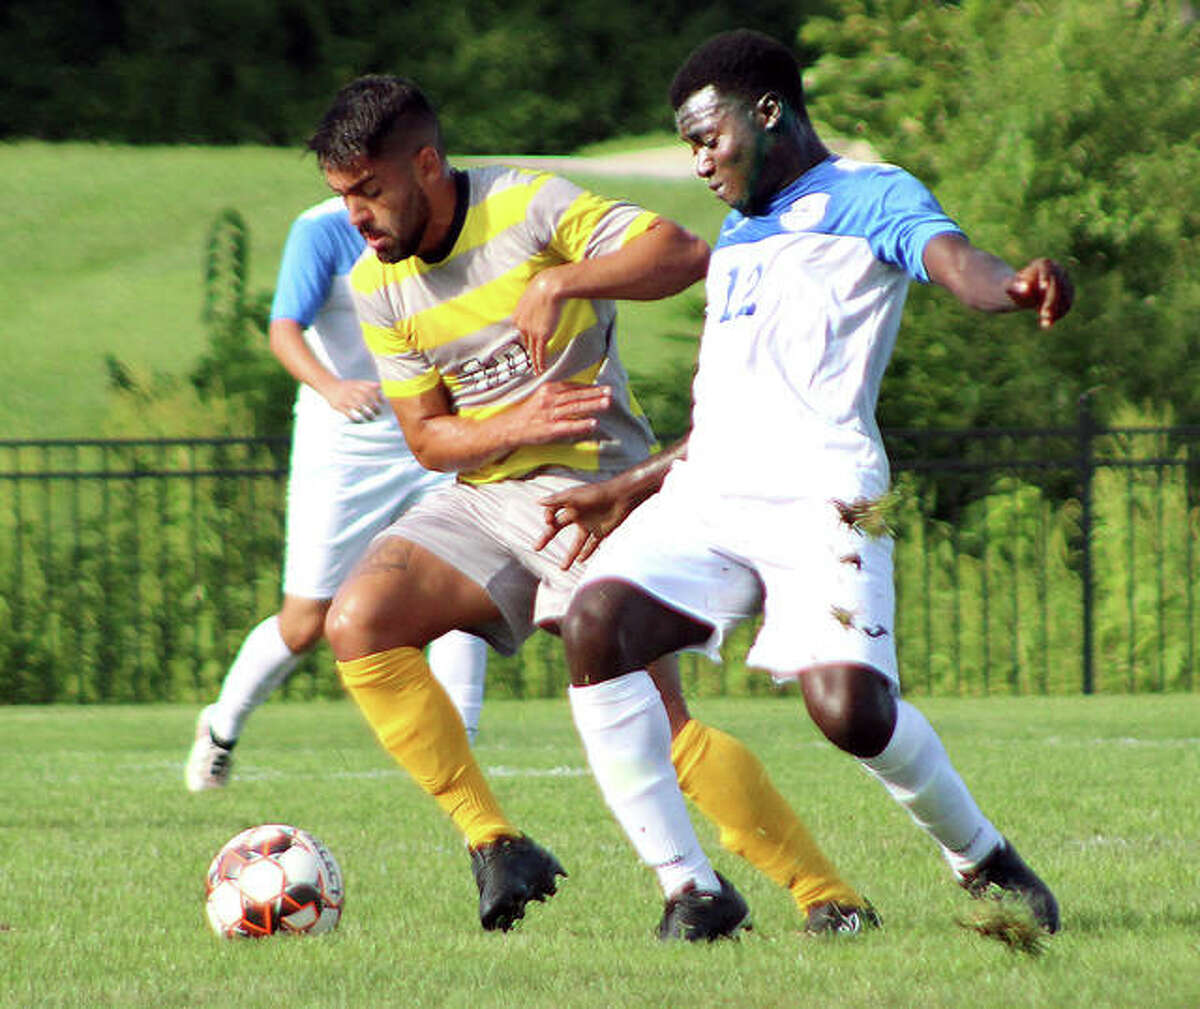 LCCC's Kofi Awuah , right, scored a goal in Thursday's 3-2 overtime loss at Illinois Central College. he is shown in action in a 2019 game.